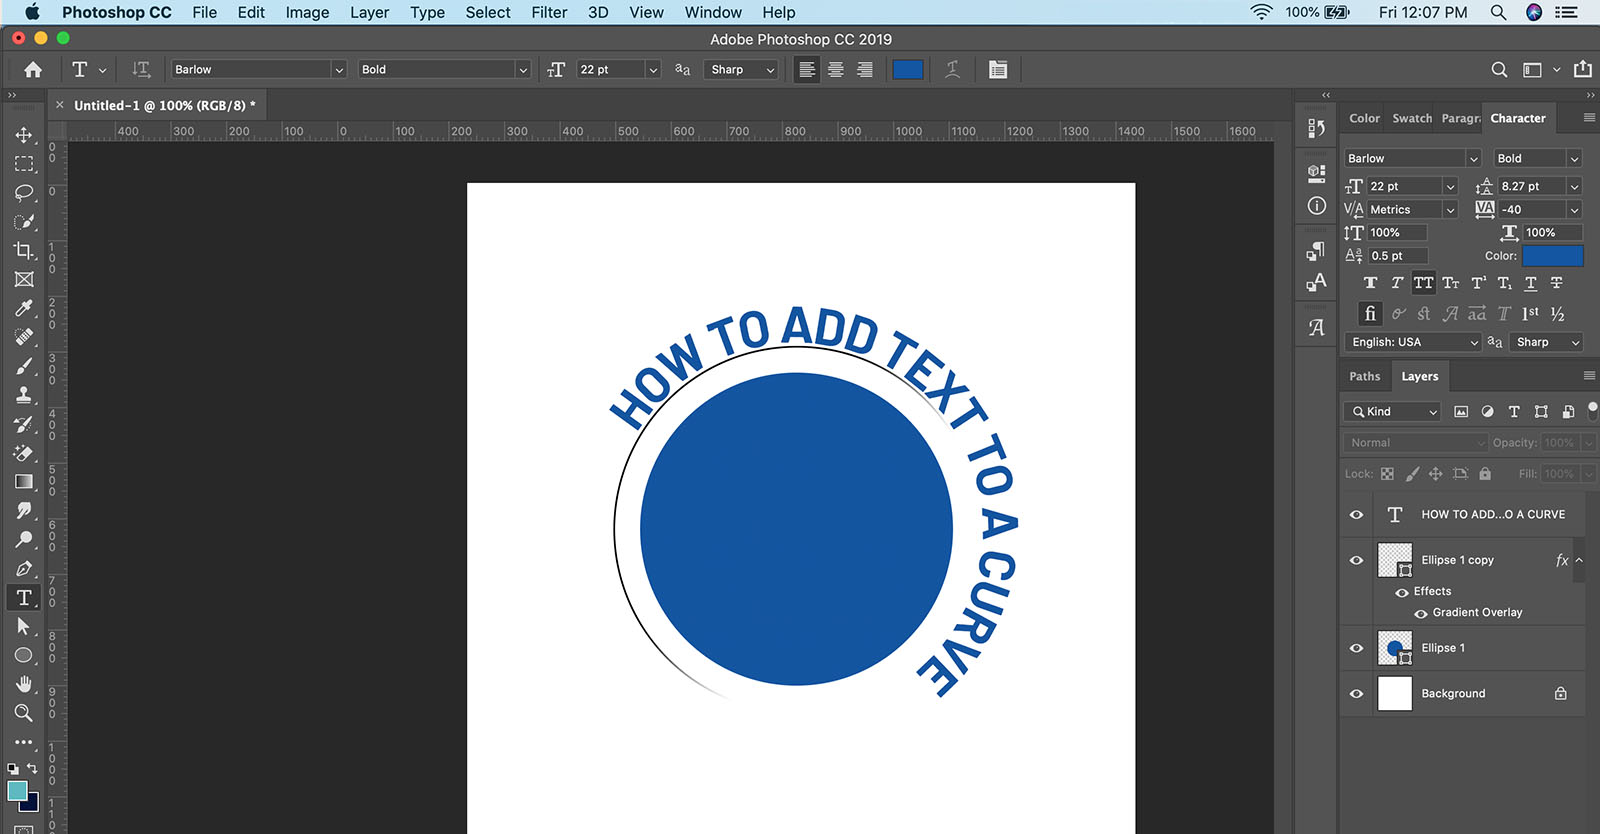 How to add text to a curve in Photoshop